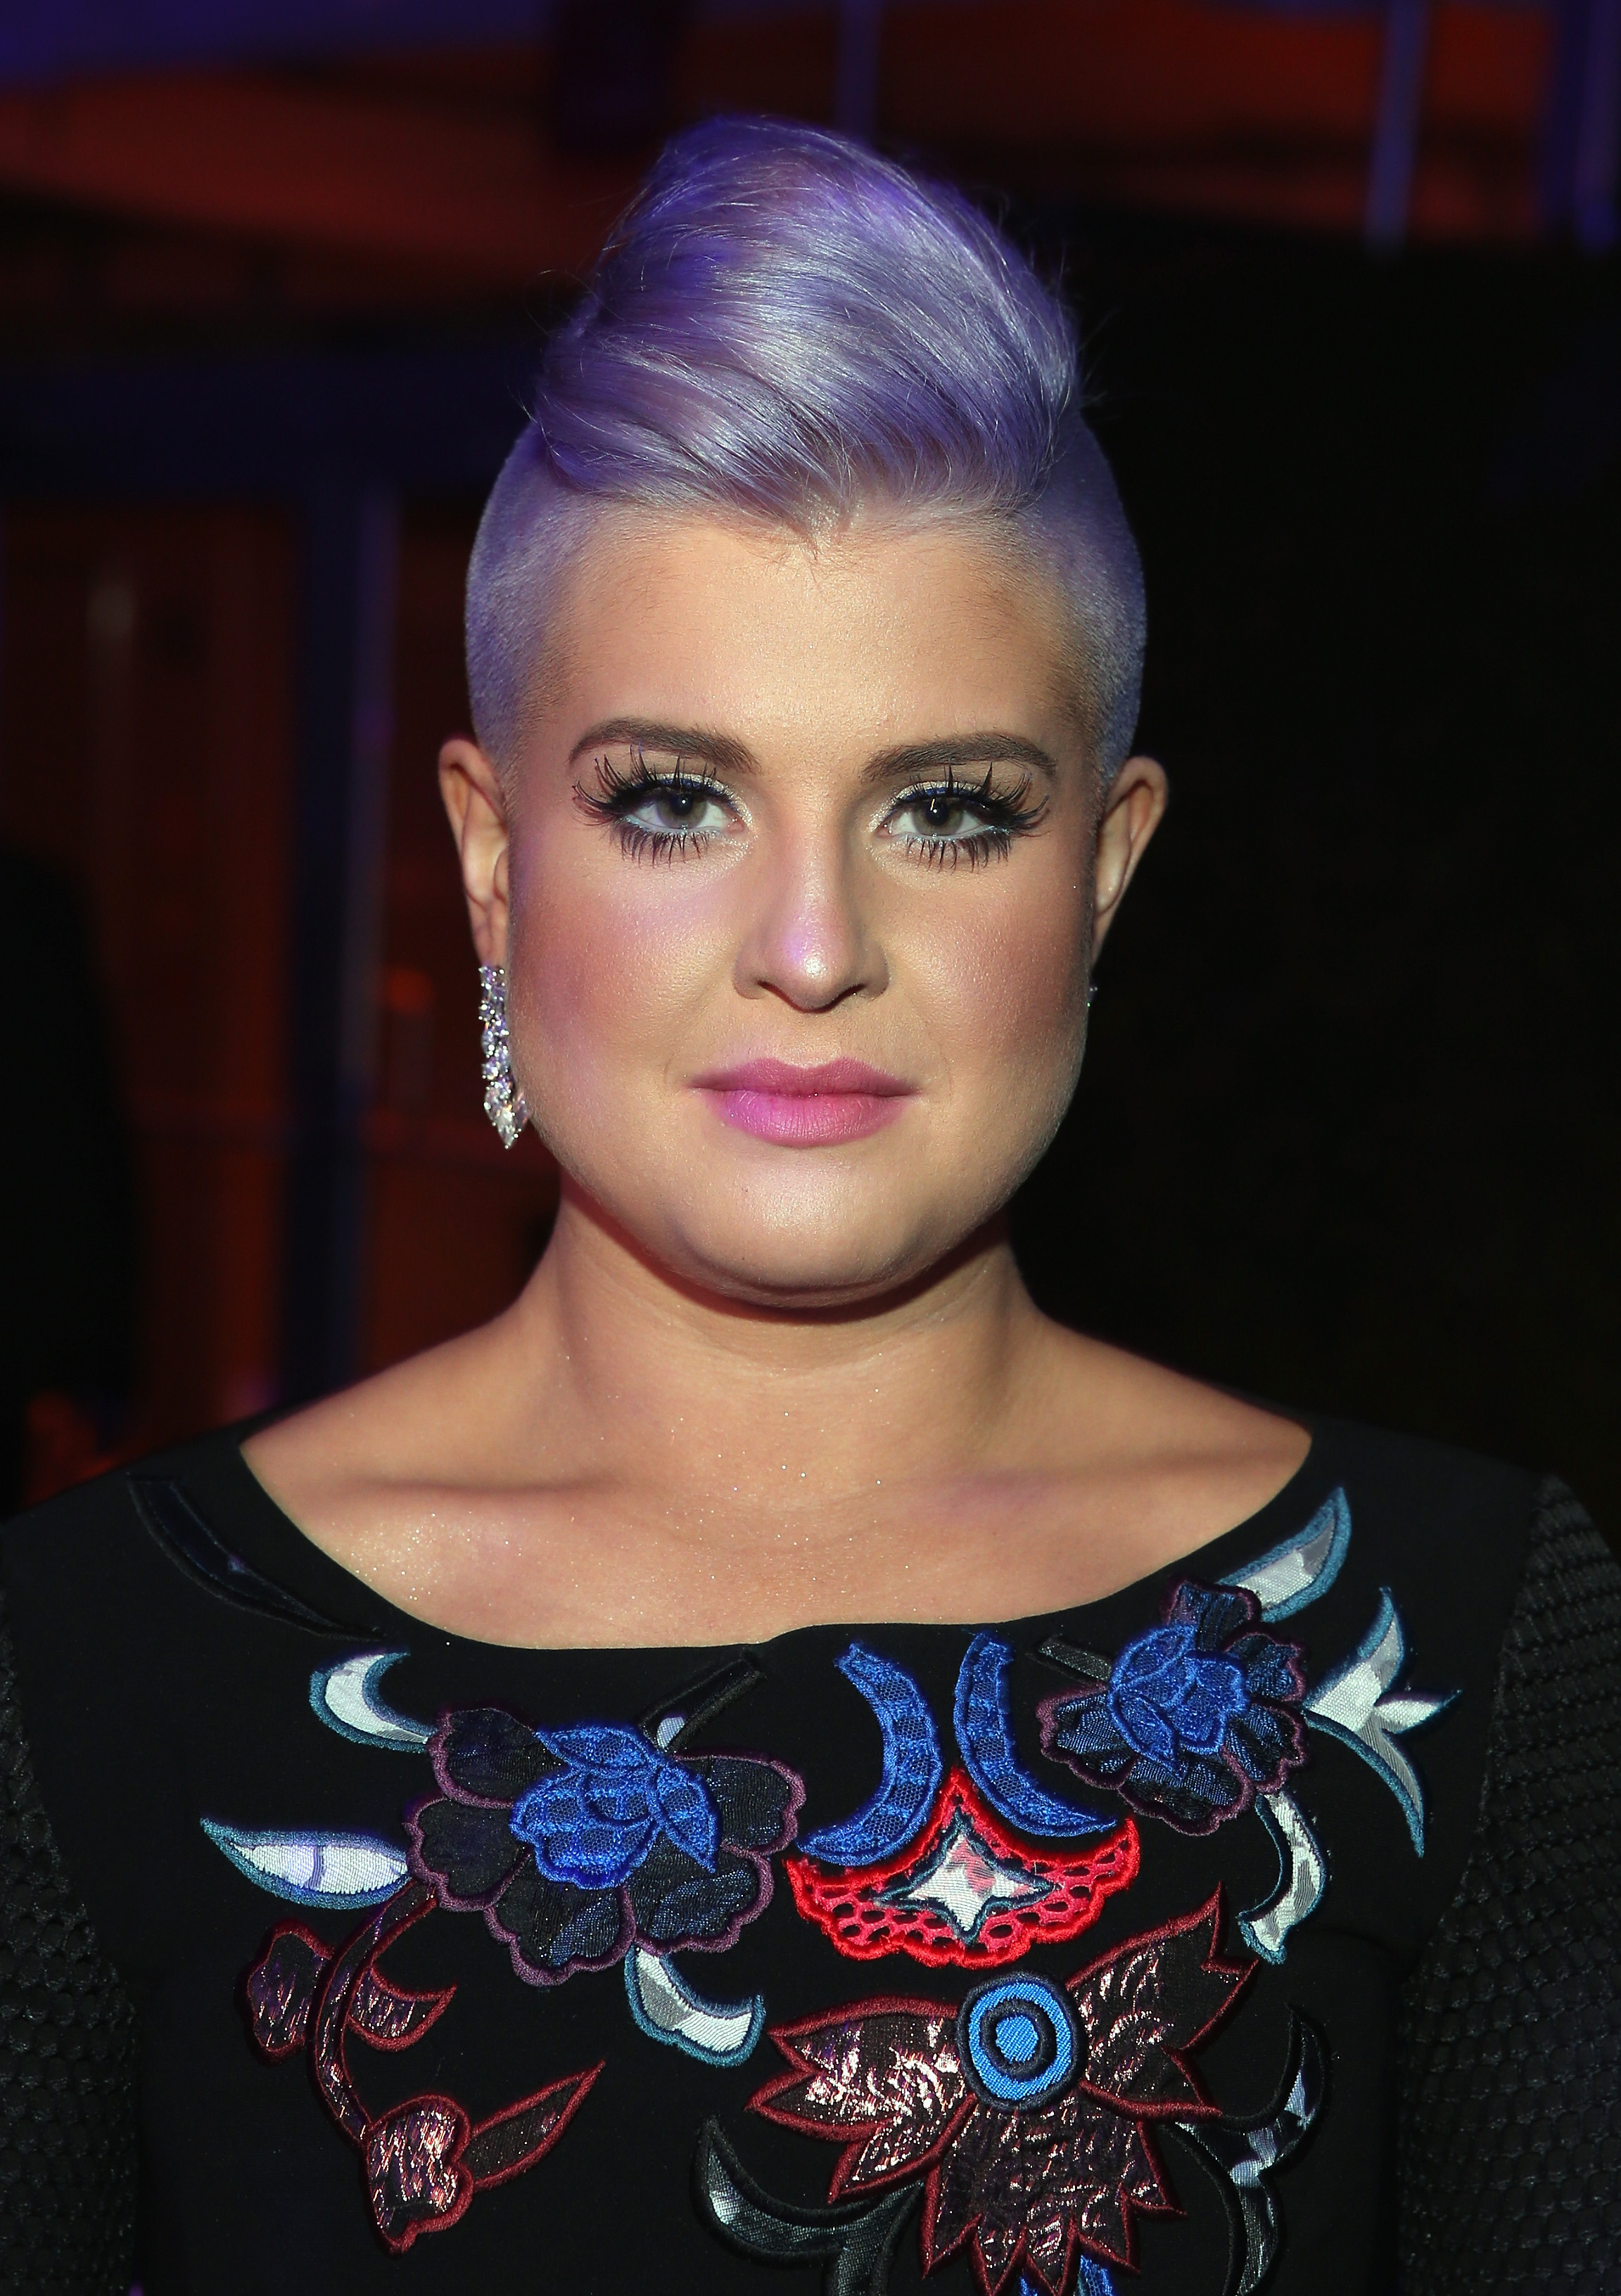 Kelly Osbourne at the 23rd Annual Elton John AIDS Foundation Academy Awards Viewing Party on February 22, 2015 in Los Angeles, California.